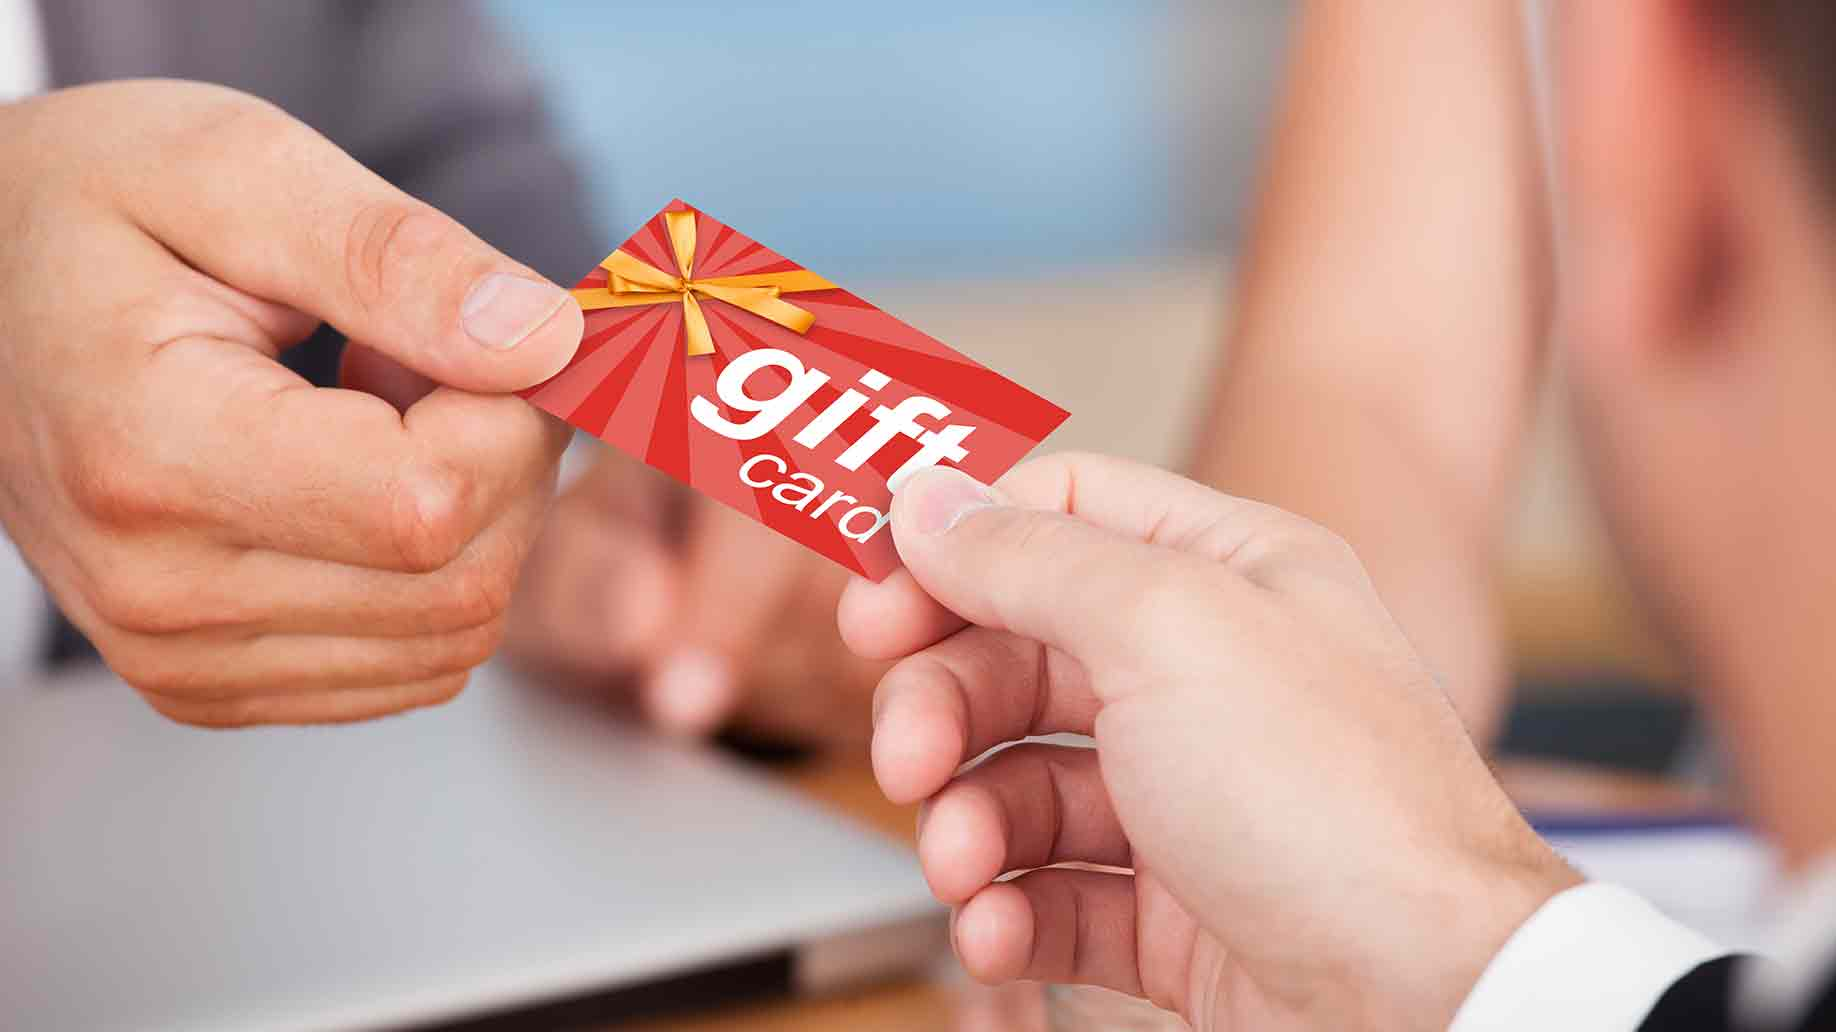 3 Sites forExchanging Gift Cards recommend